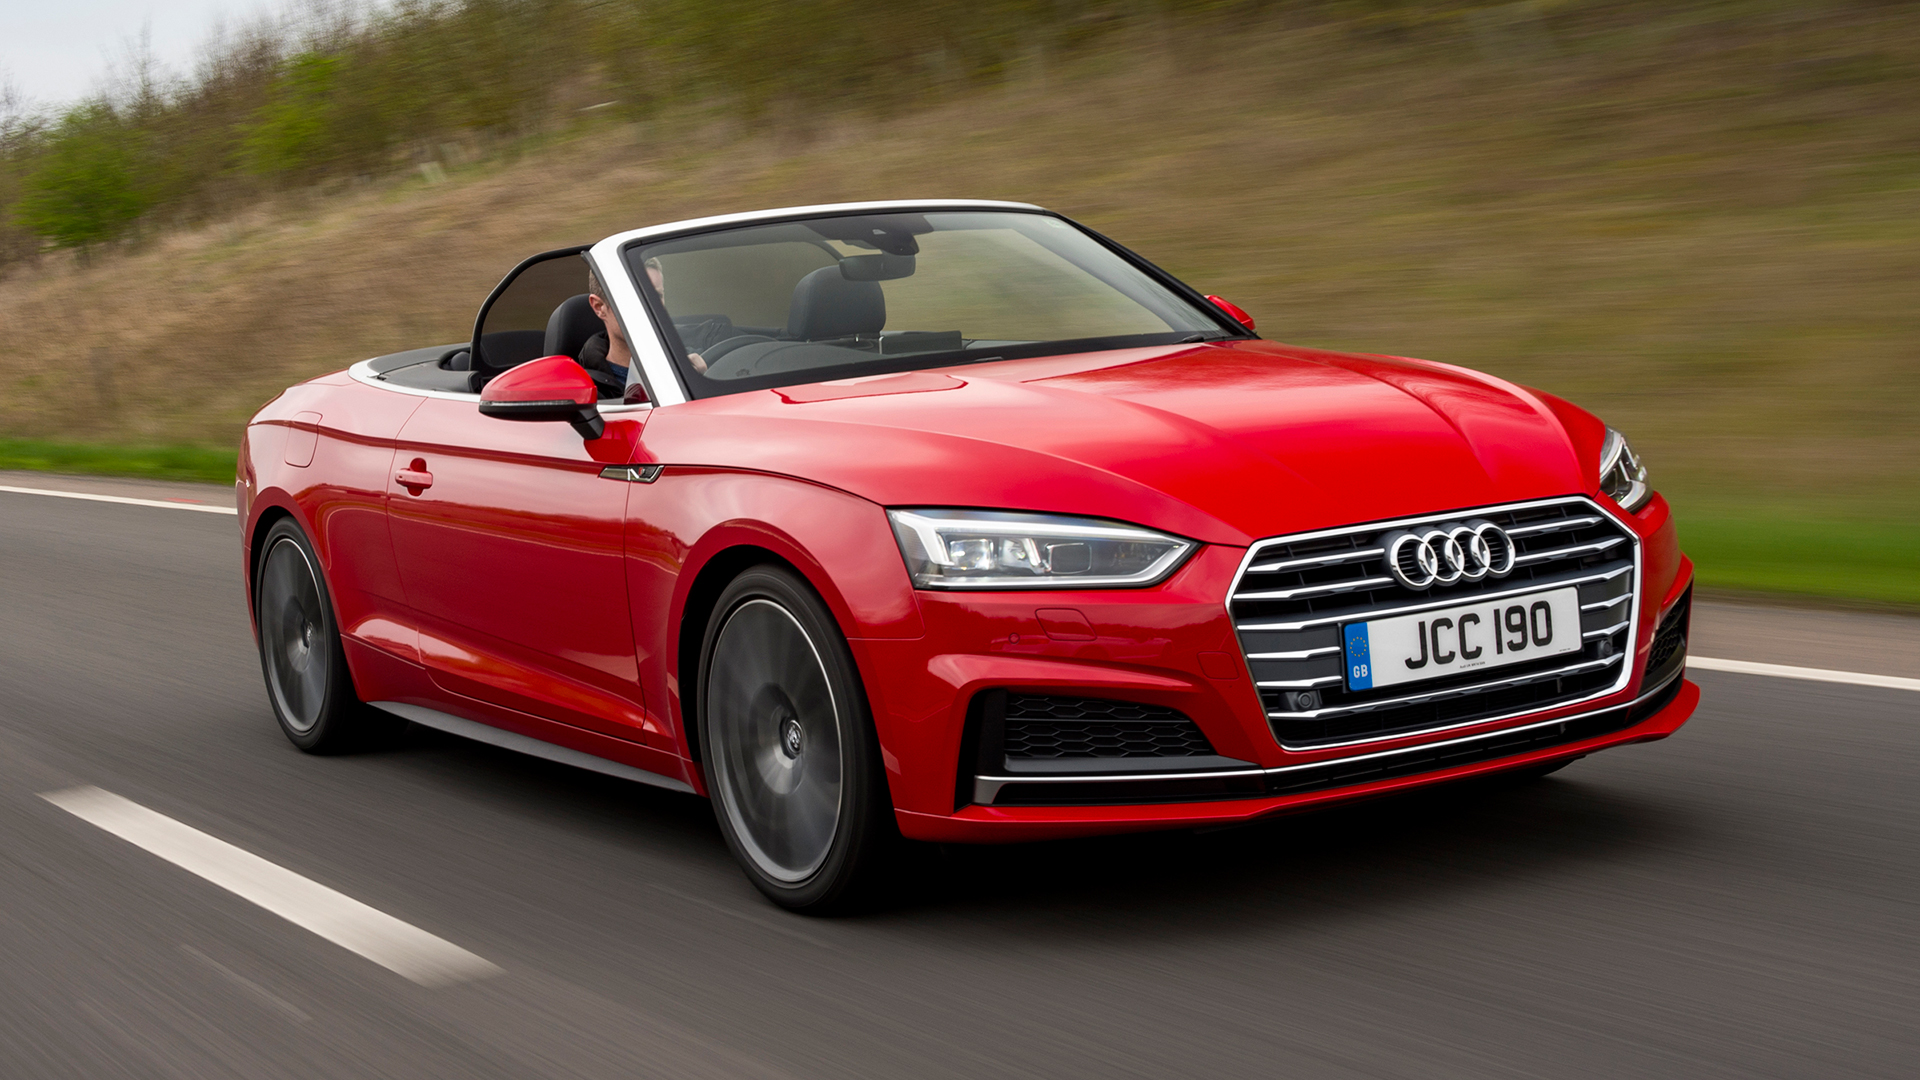 Audi Convertible Cars For Sale On Auto Trader Uk